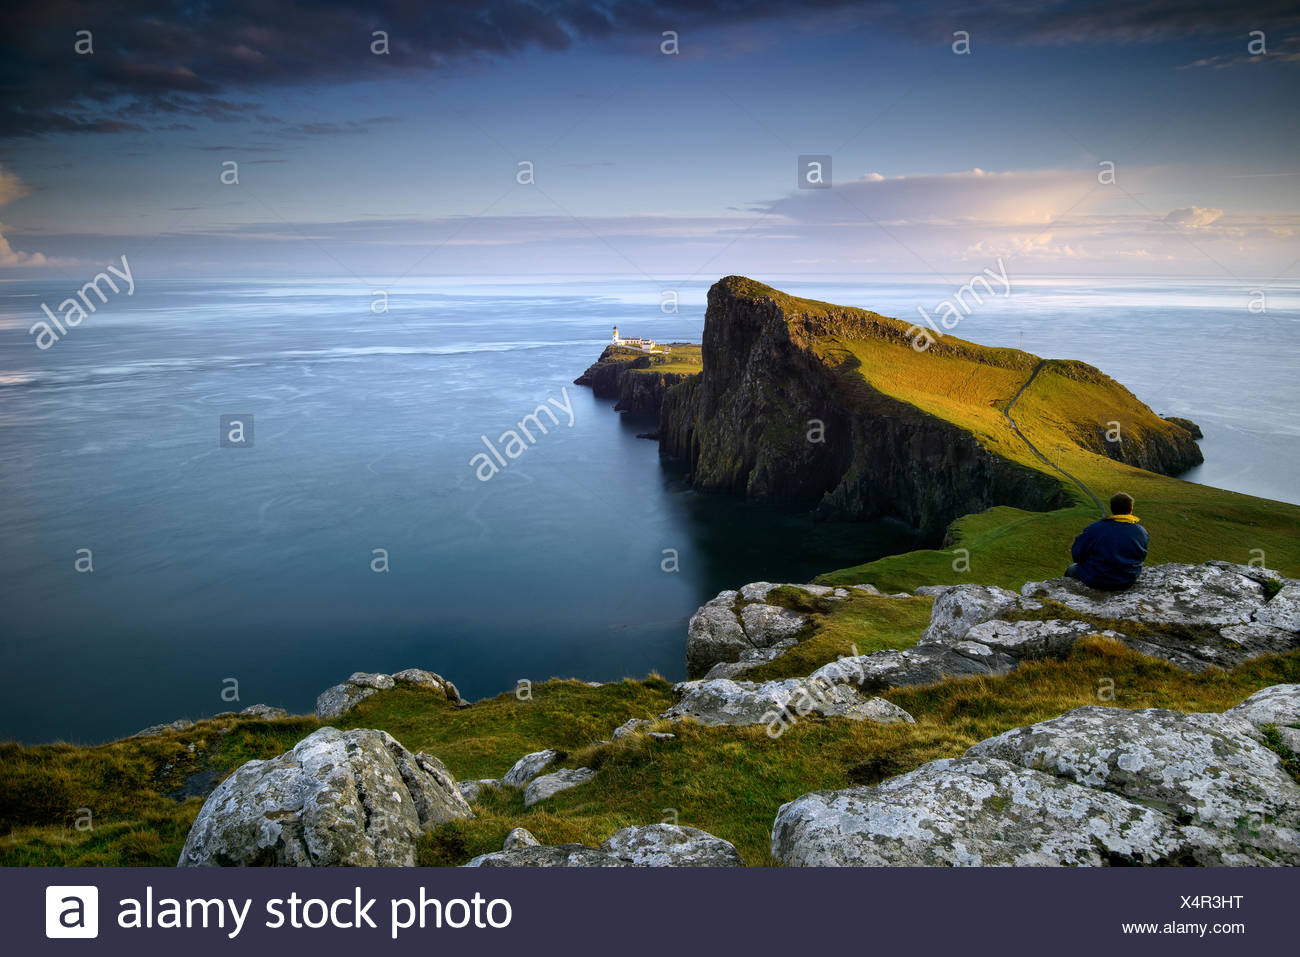 Mid adult man sitting on a rock looking out to sea at Neist Point, Scotland - Stock Image